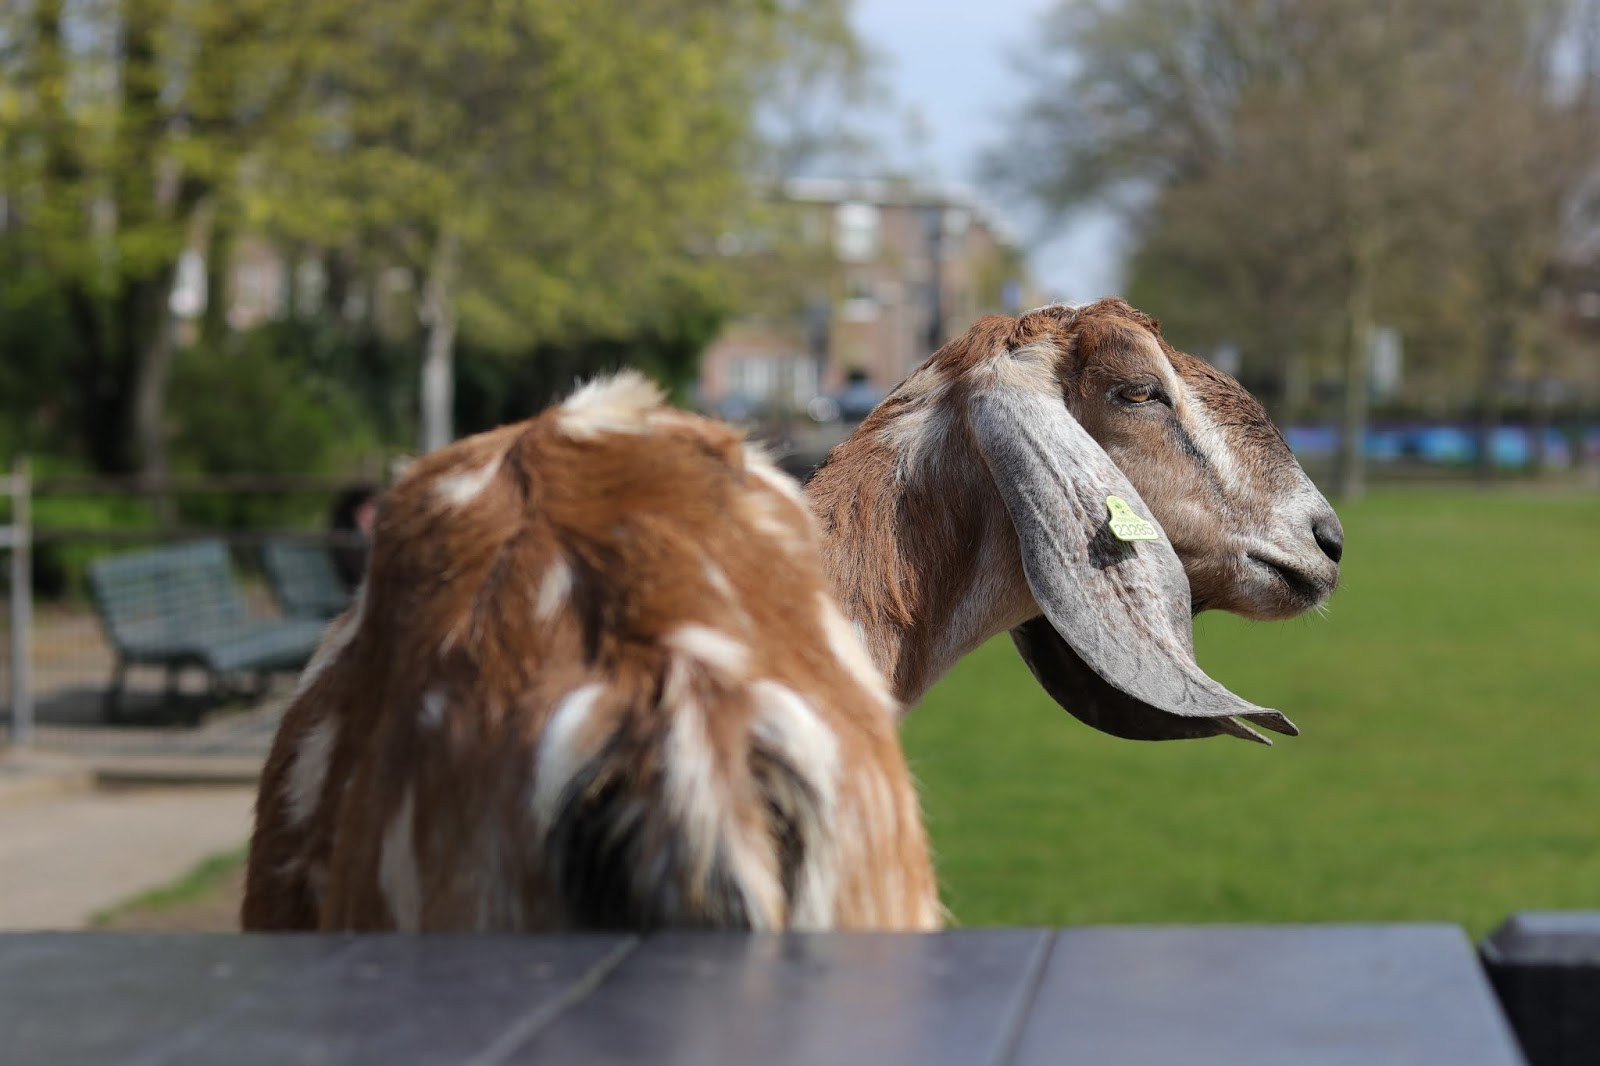 A brown goat with long ears